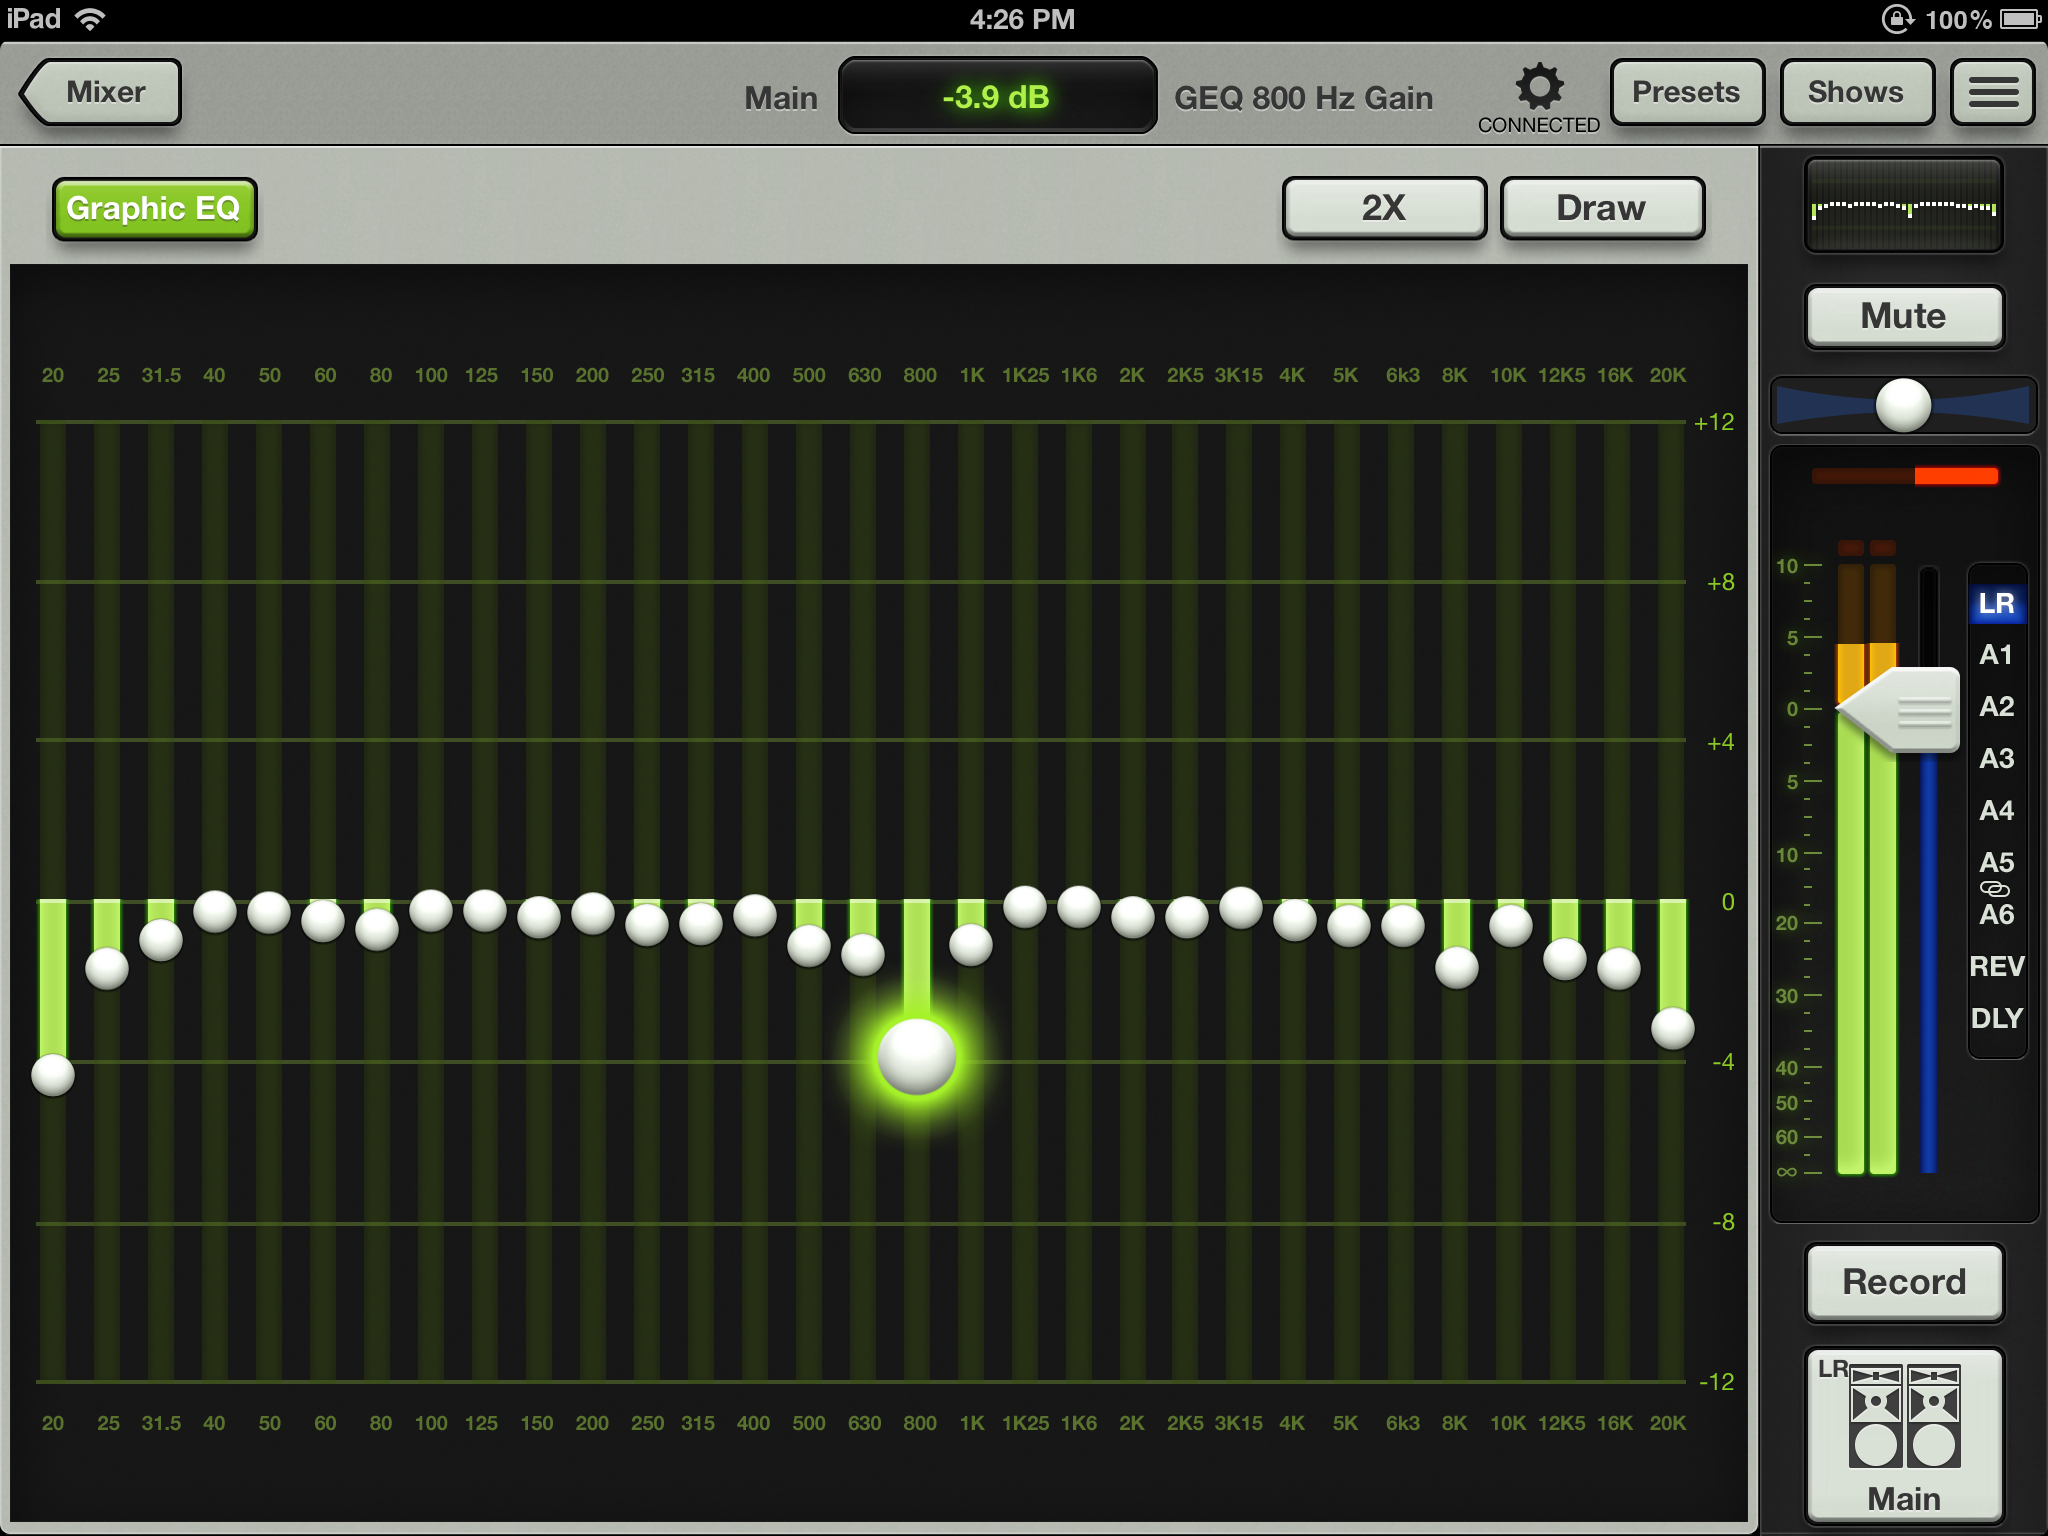 Older version screen shot of the graphic EQ